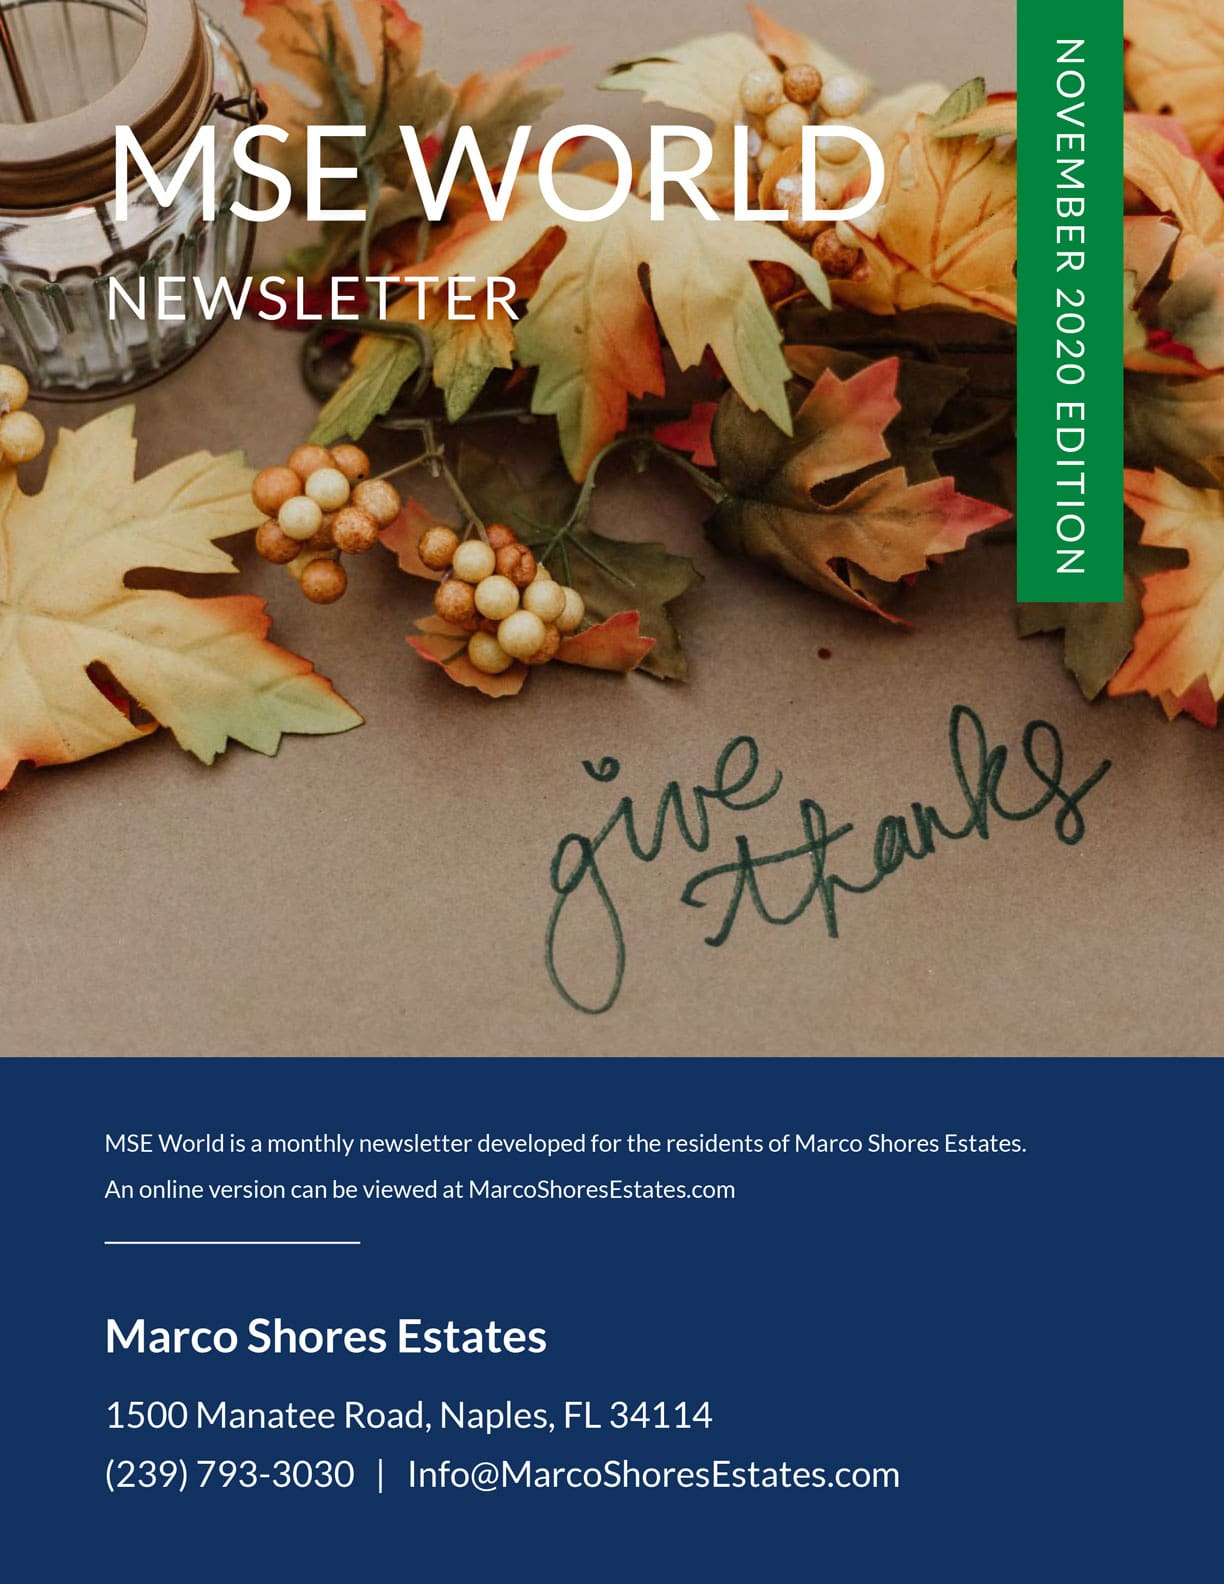 Marco Shores Estates - Active 55+ Community - MSE World November Edition